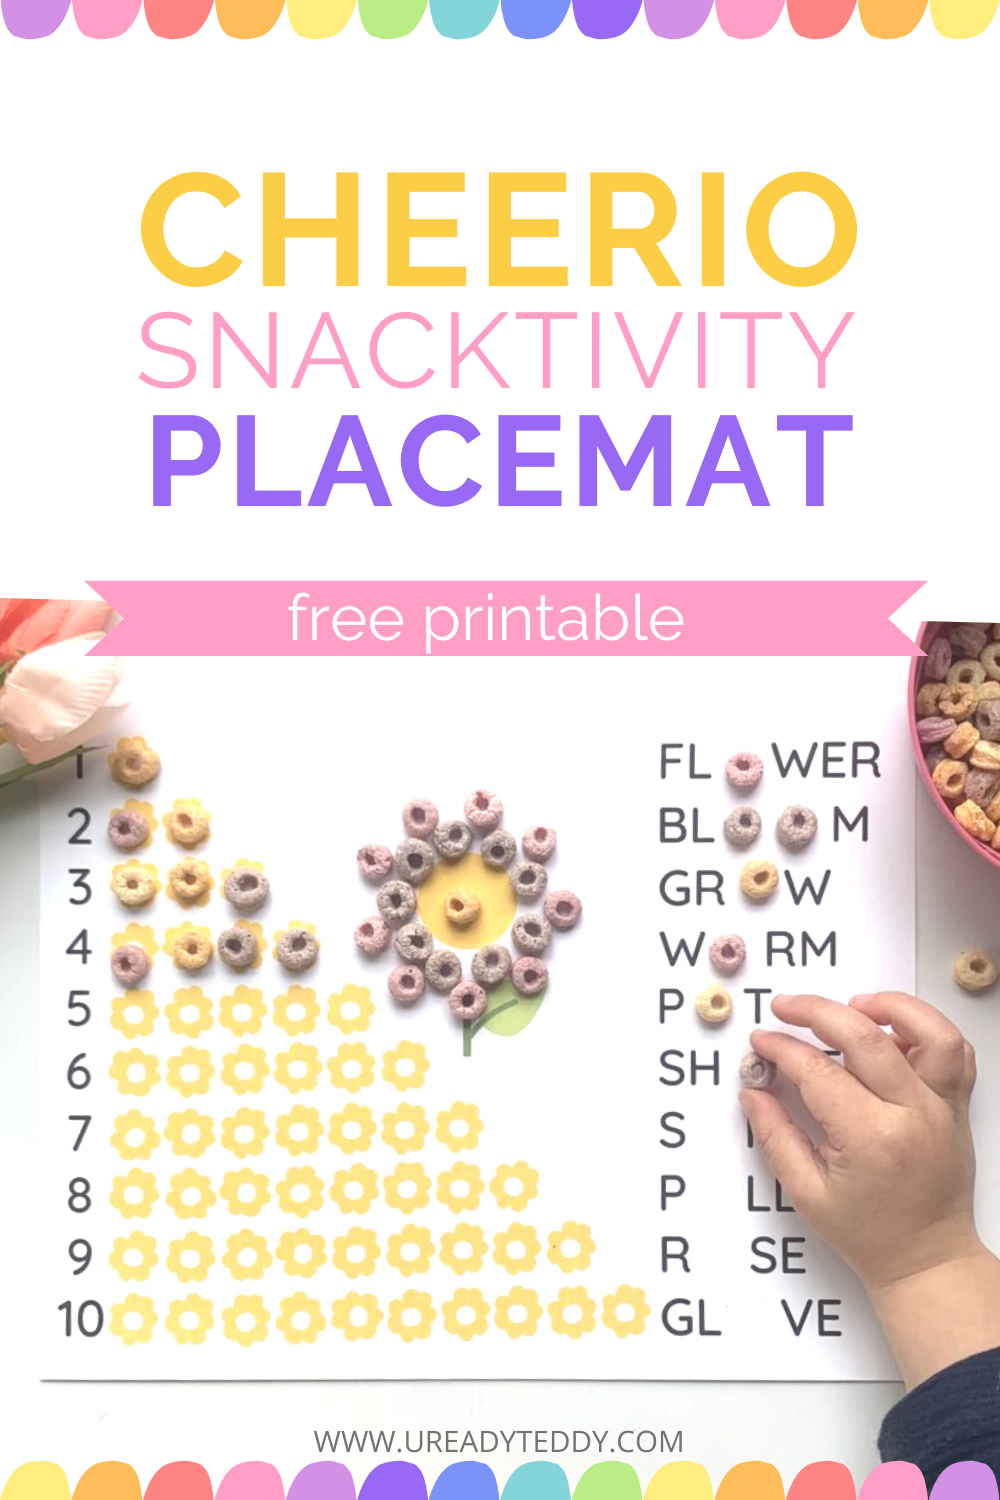 Cheerio placemat cereal free printable worksheet counting, flower garden sight words art, snacktivty, craftivity